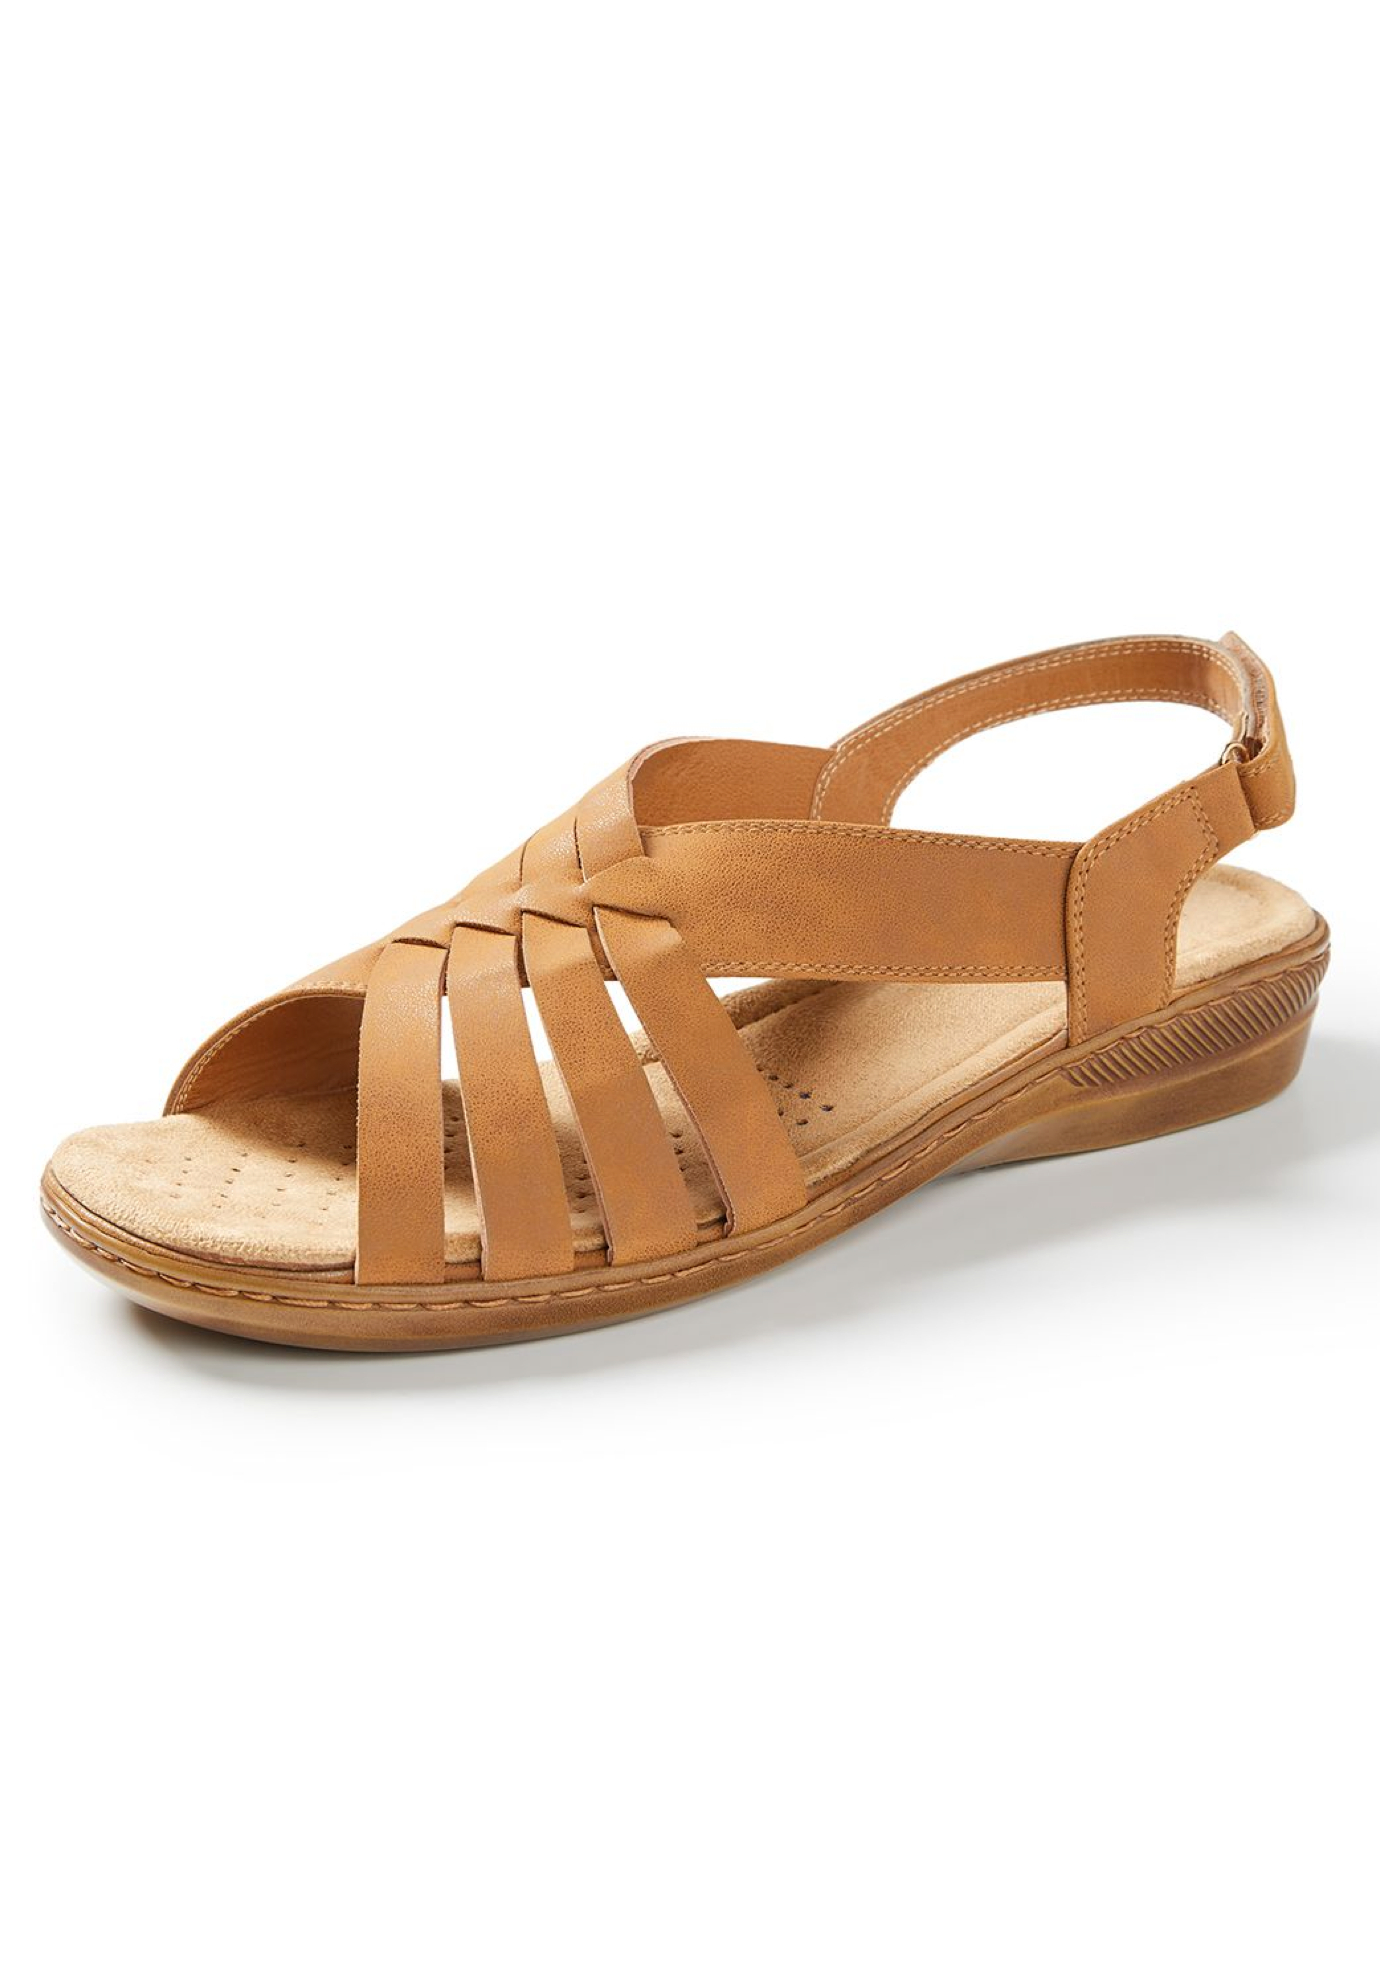 Good Soles Crisscross Sandal,